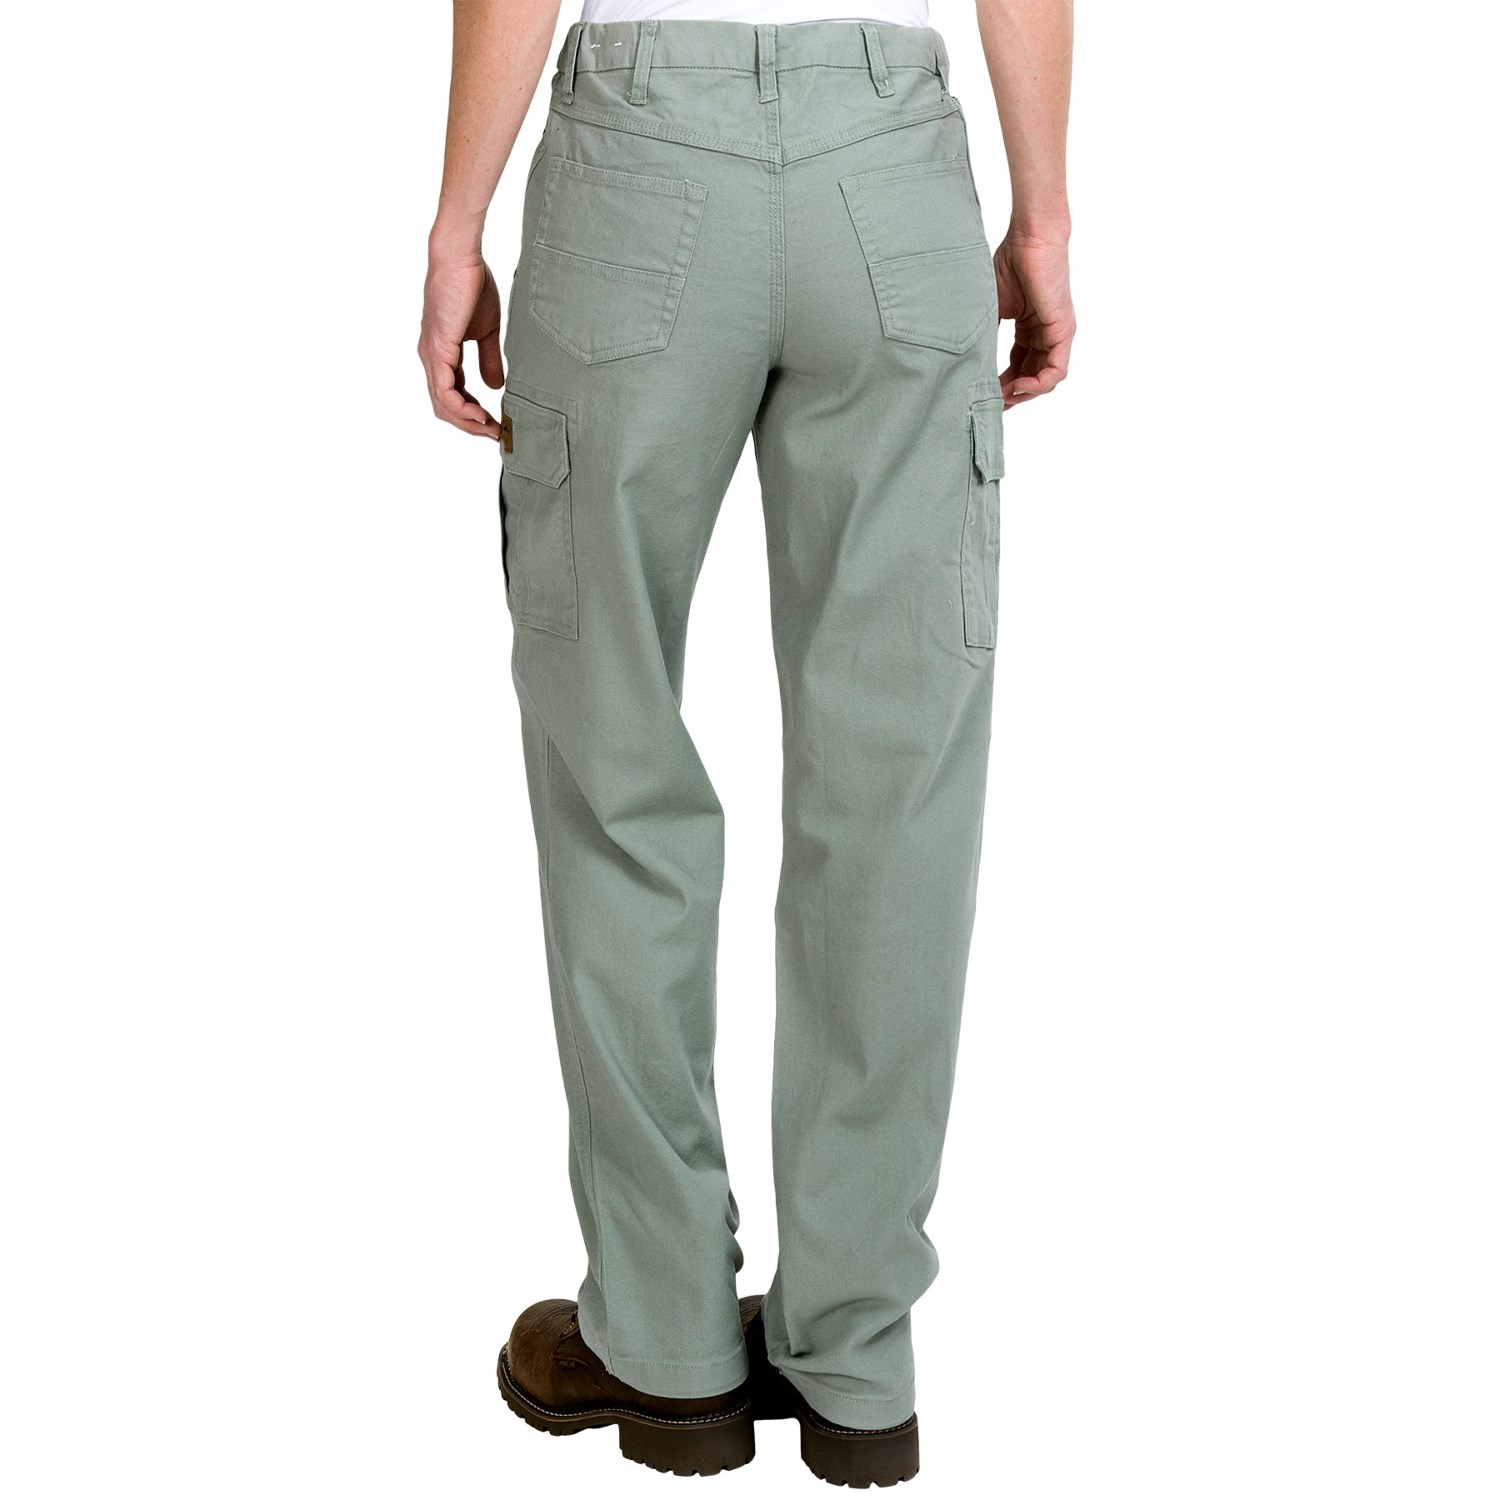 Brilliant Womens Pants Cargo Rusty Victory Pant Twilight More Cargo Pants Women